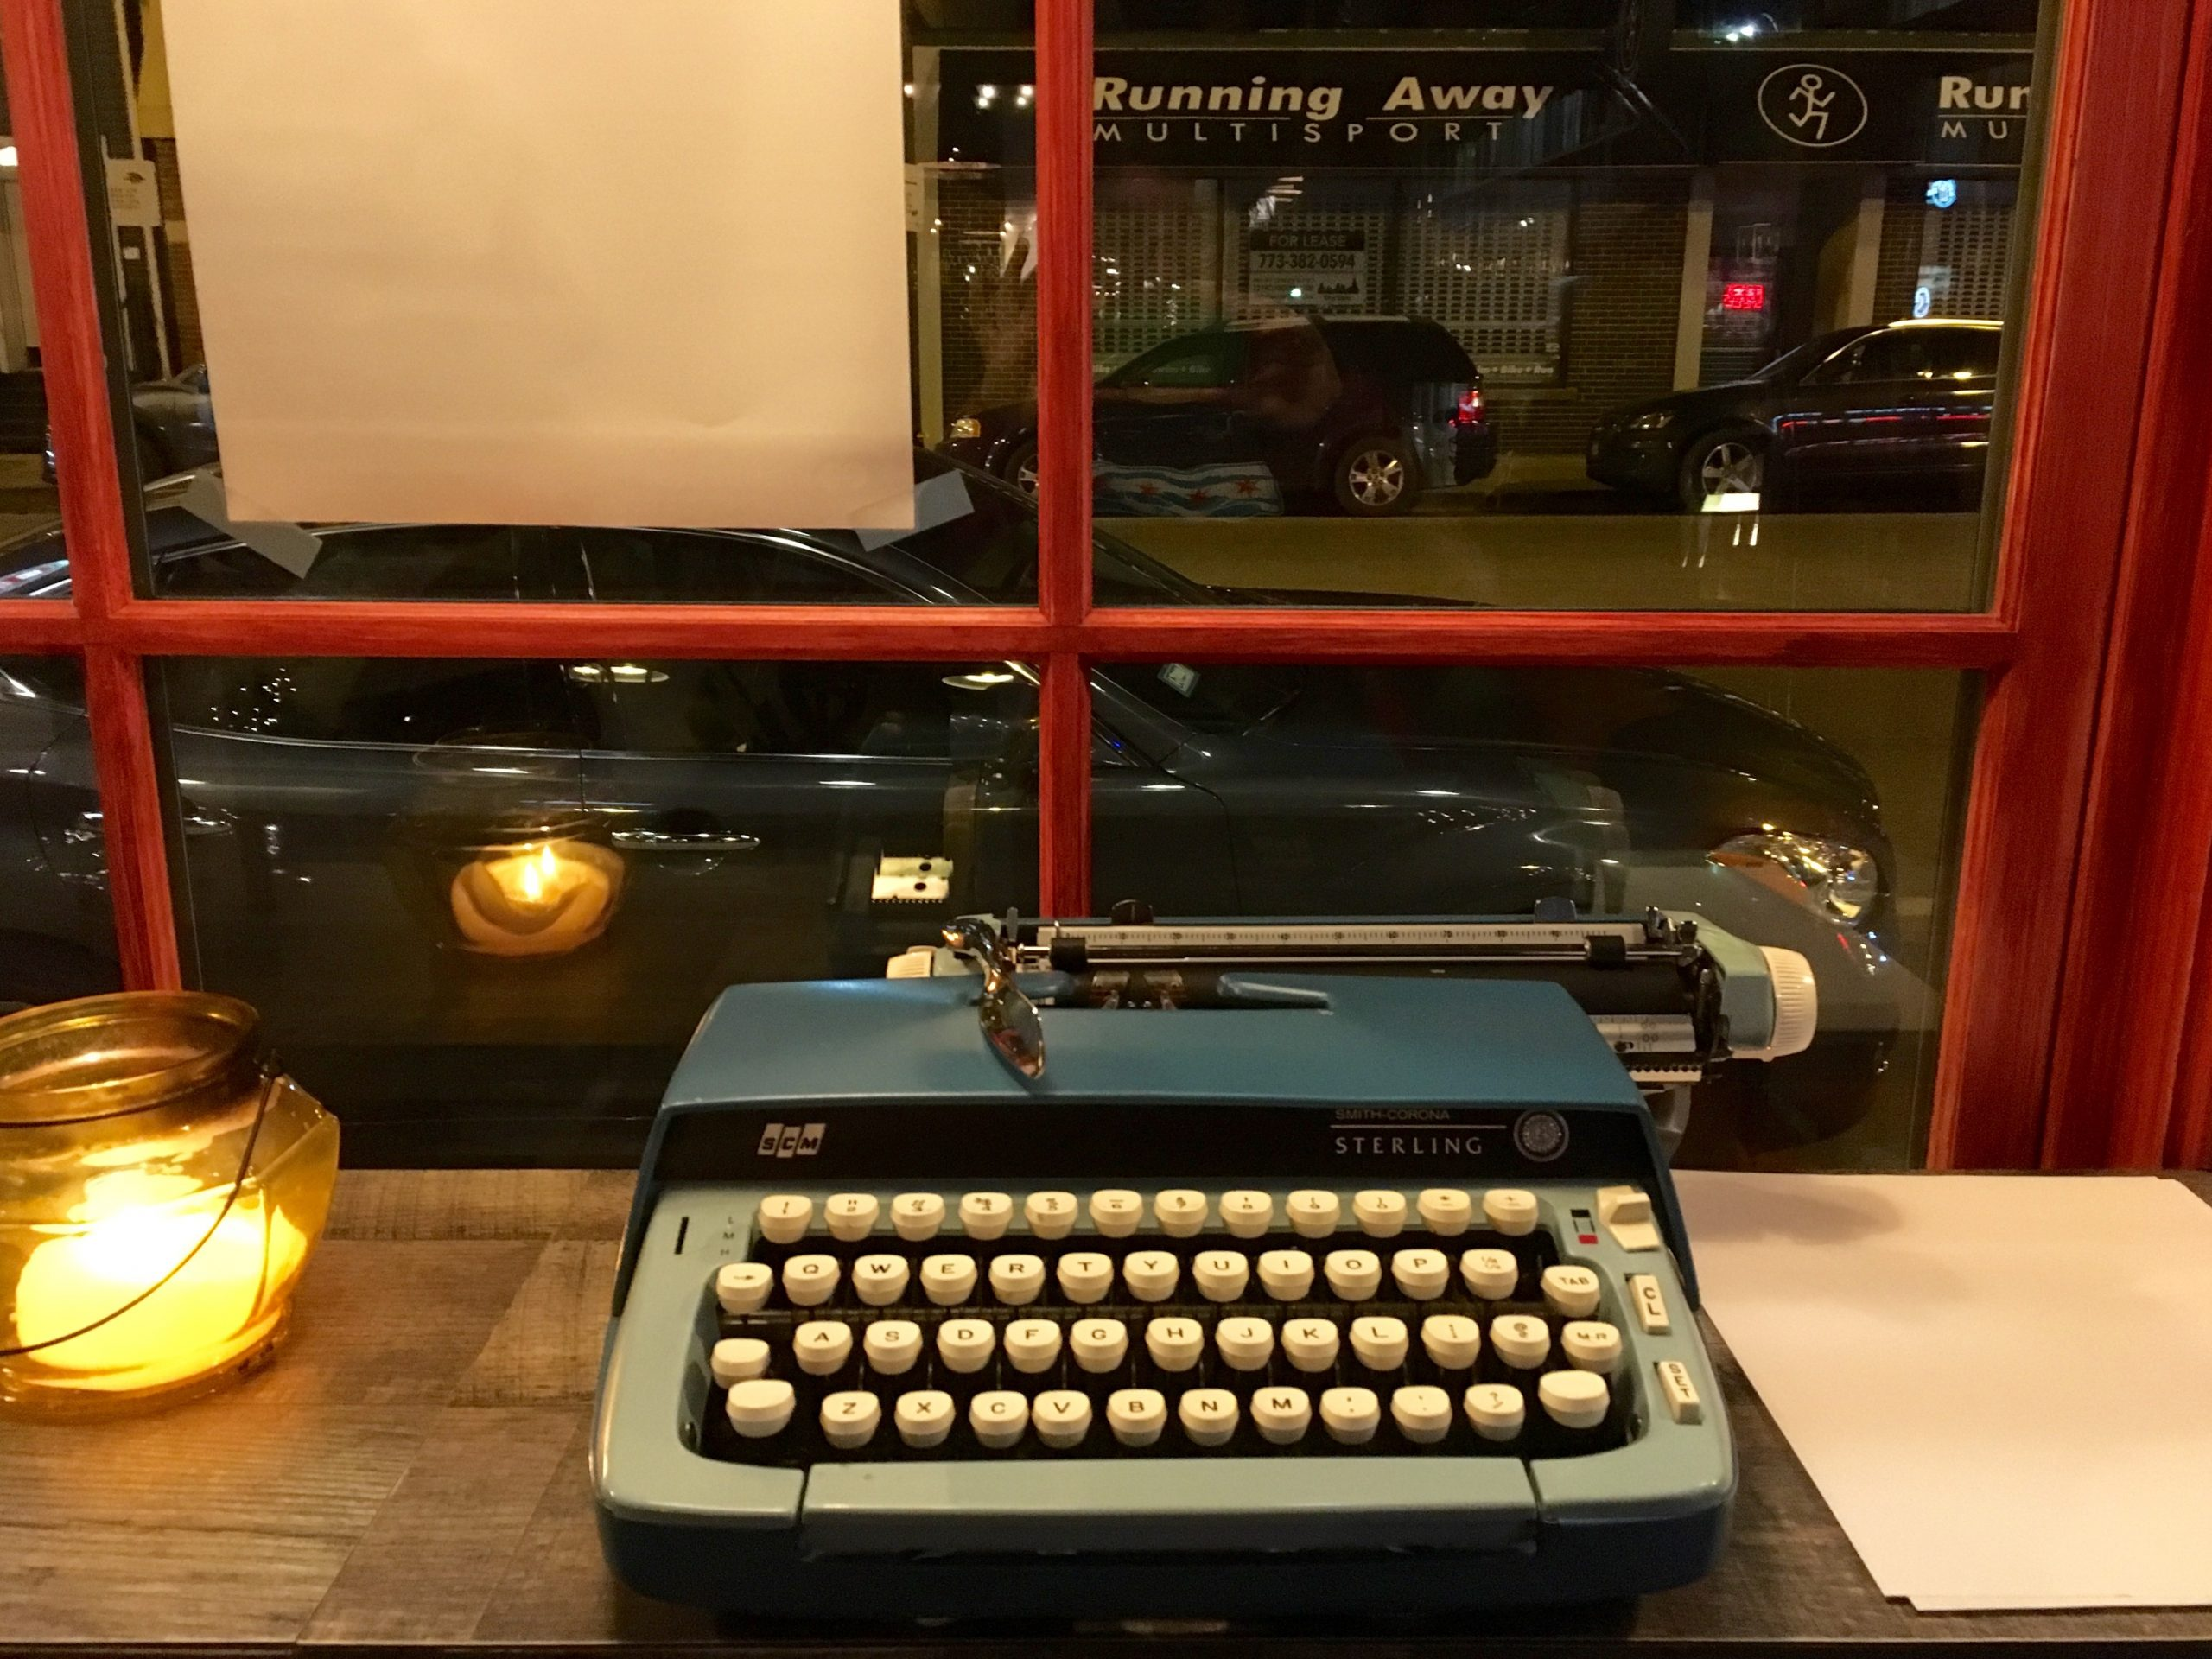 Patrons are encouraged to write with a provided typewriter.